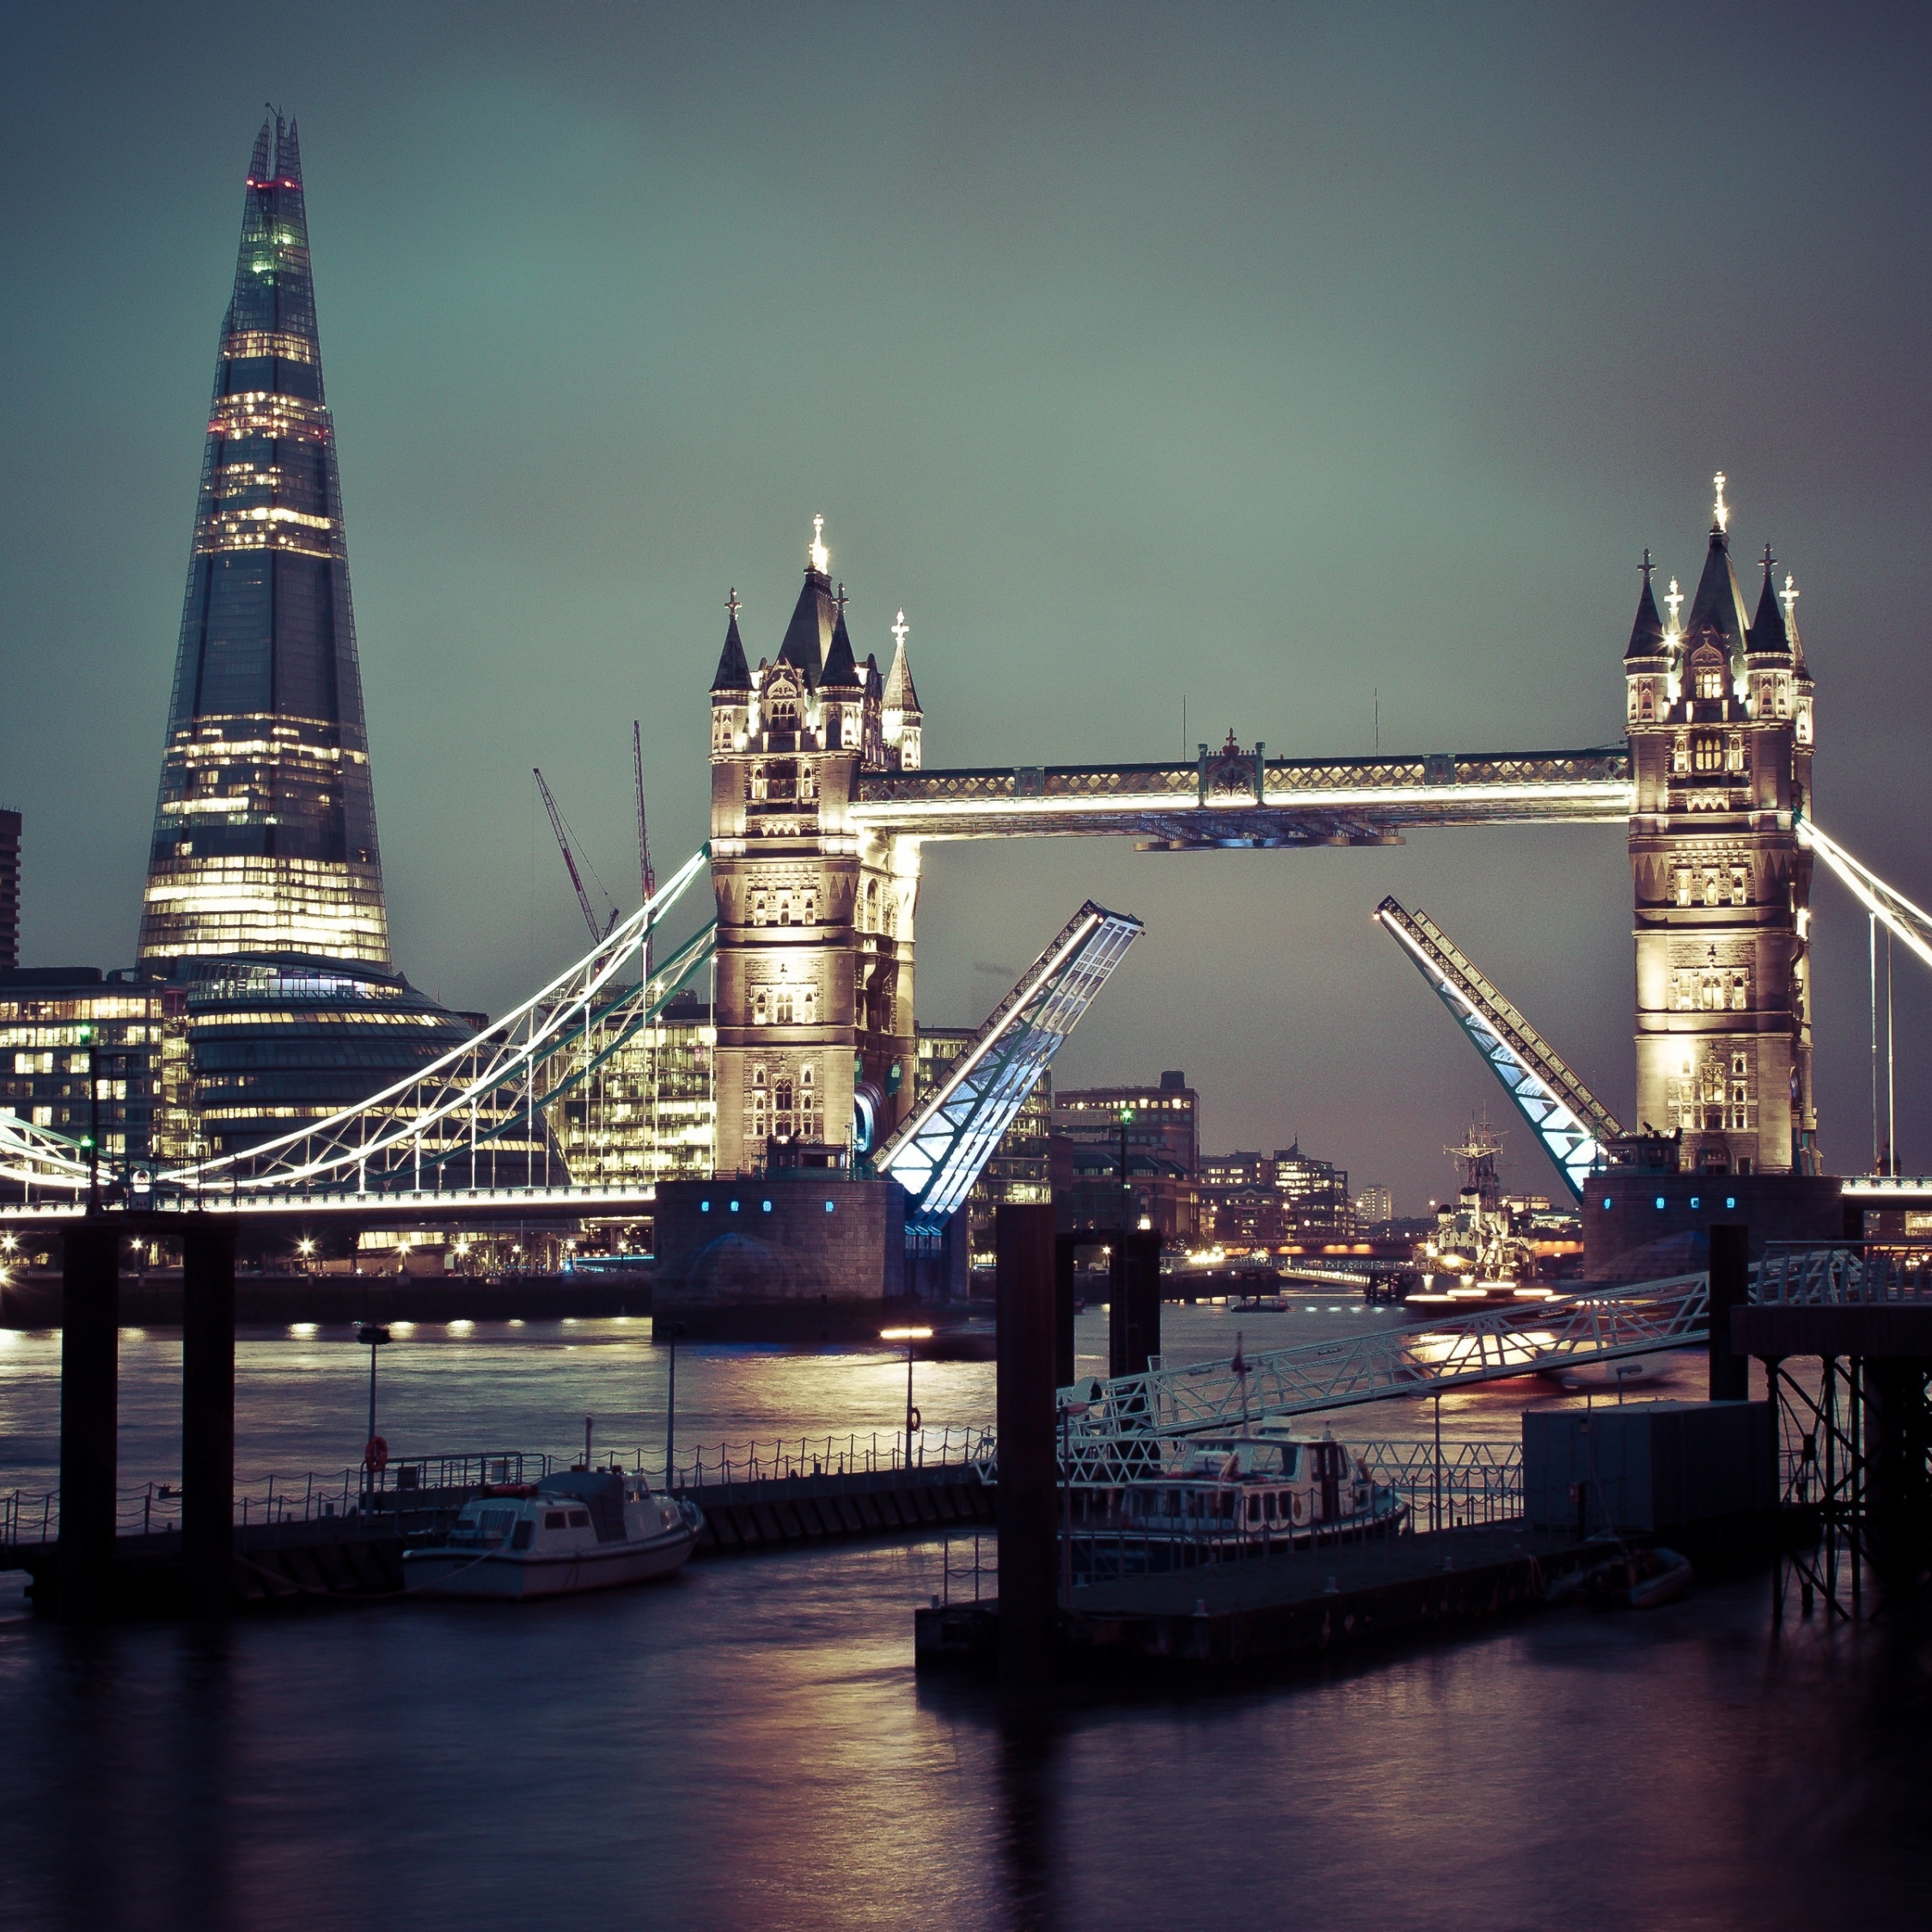 Download 2248x2248 Wallpaper Tower Bridge, London